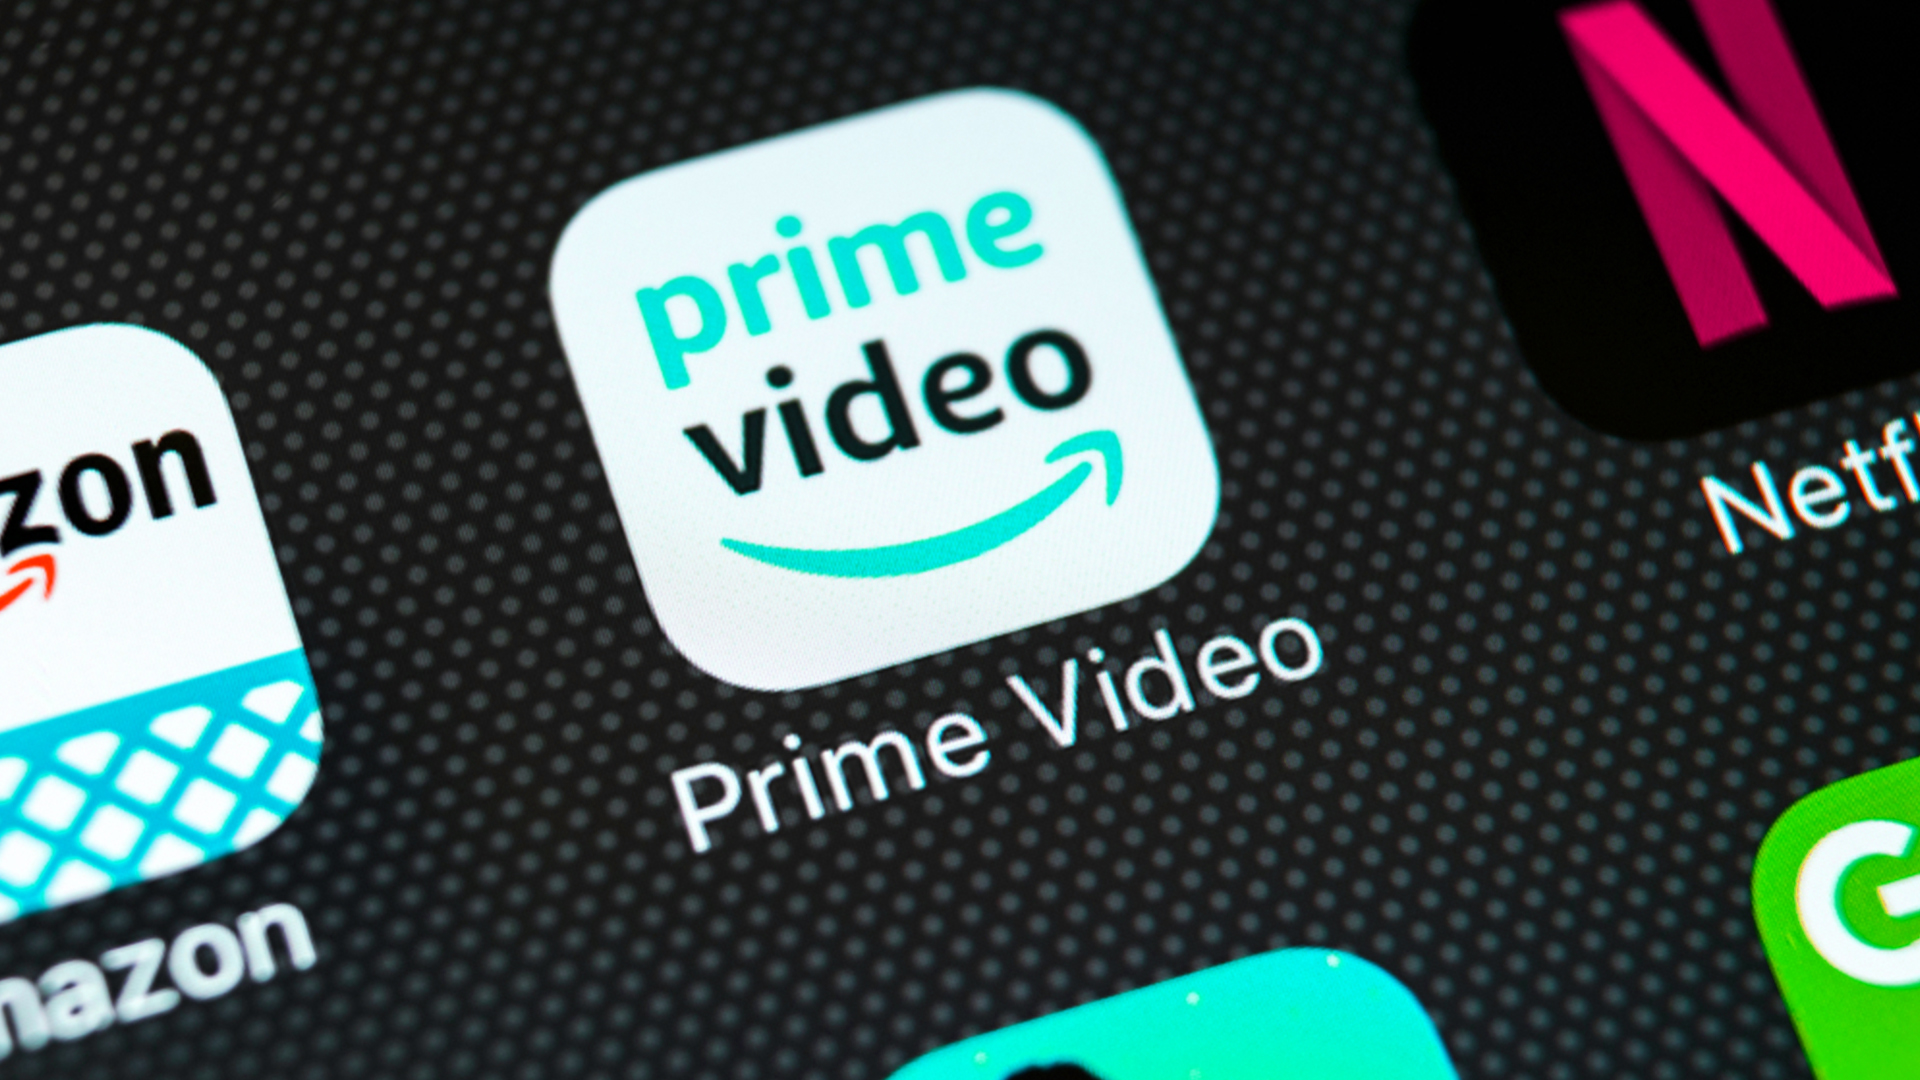 Get along with Amazon Prime Video